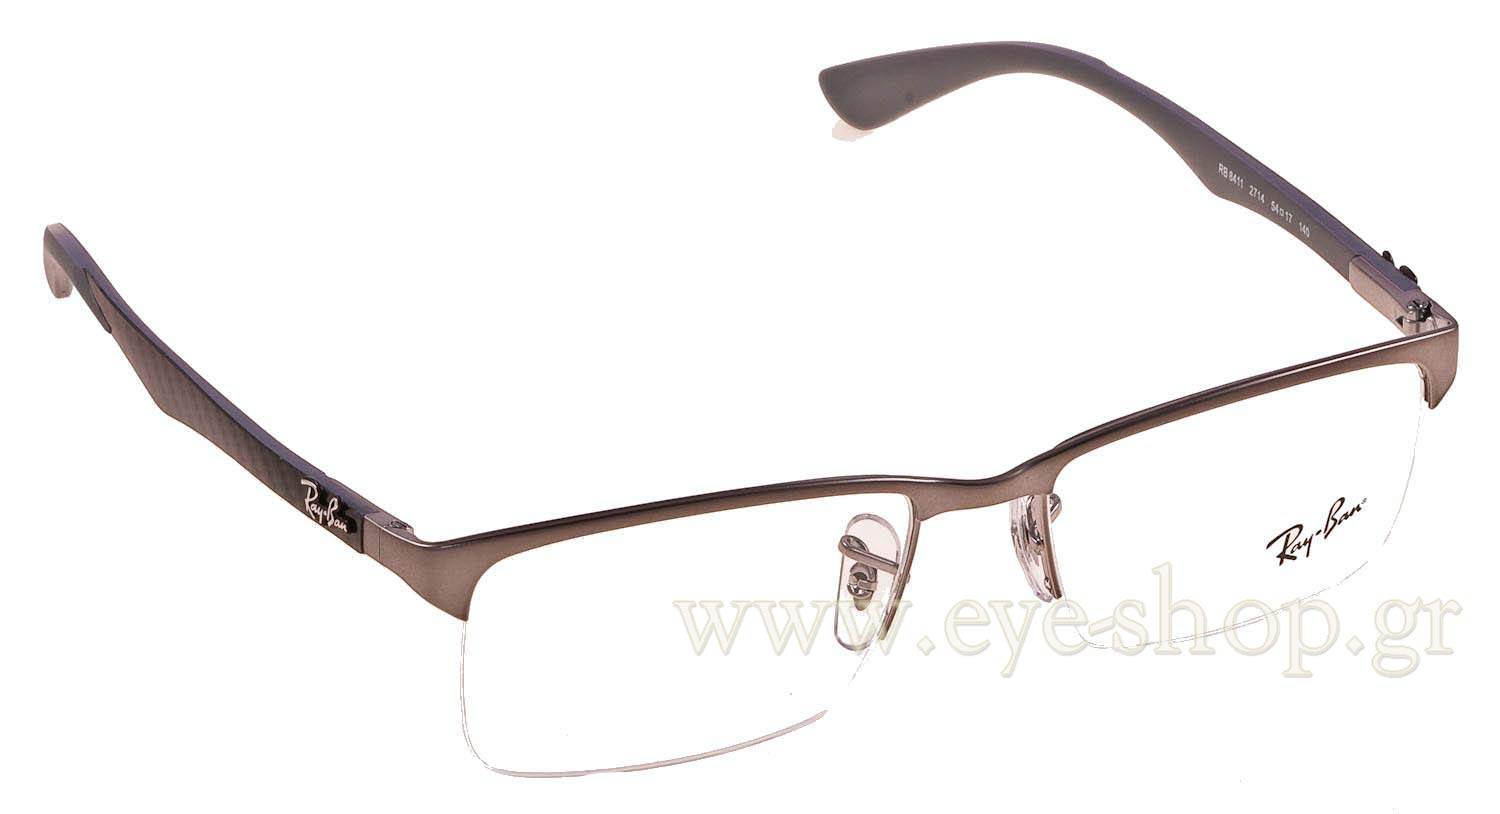 ray ban 8411  rectangular , color silver metal. extreme magnification eye shop. glasses rayban 8411 2714 carbon